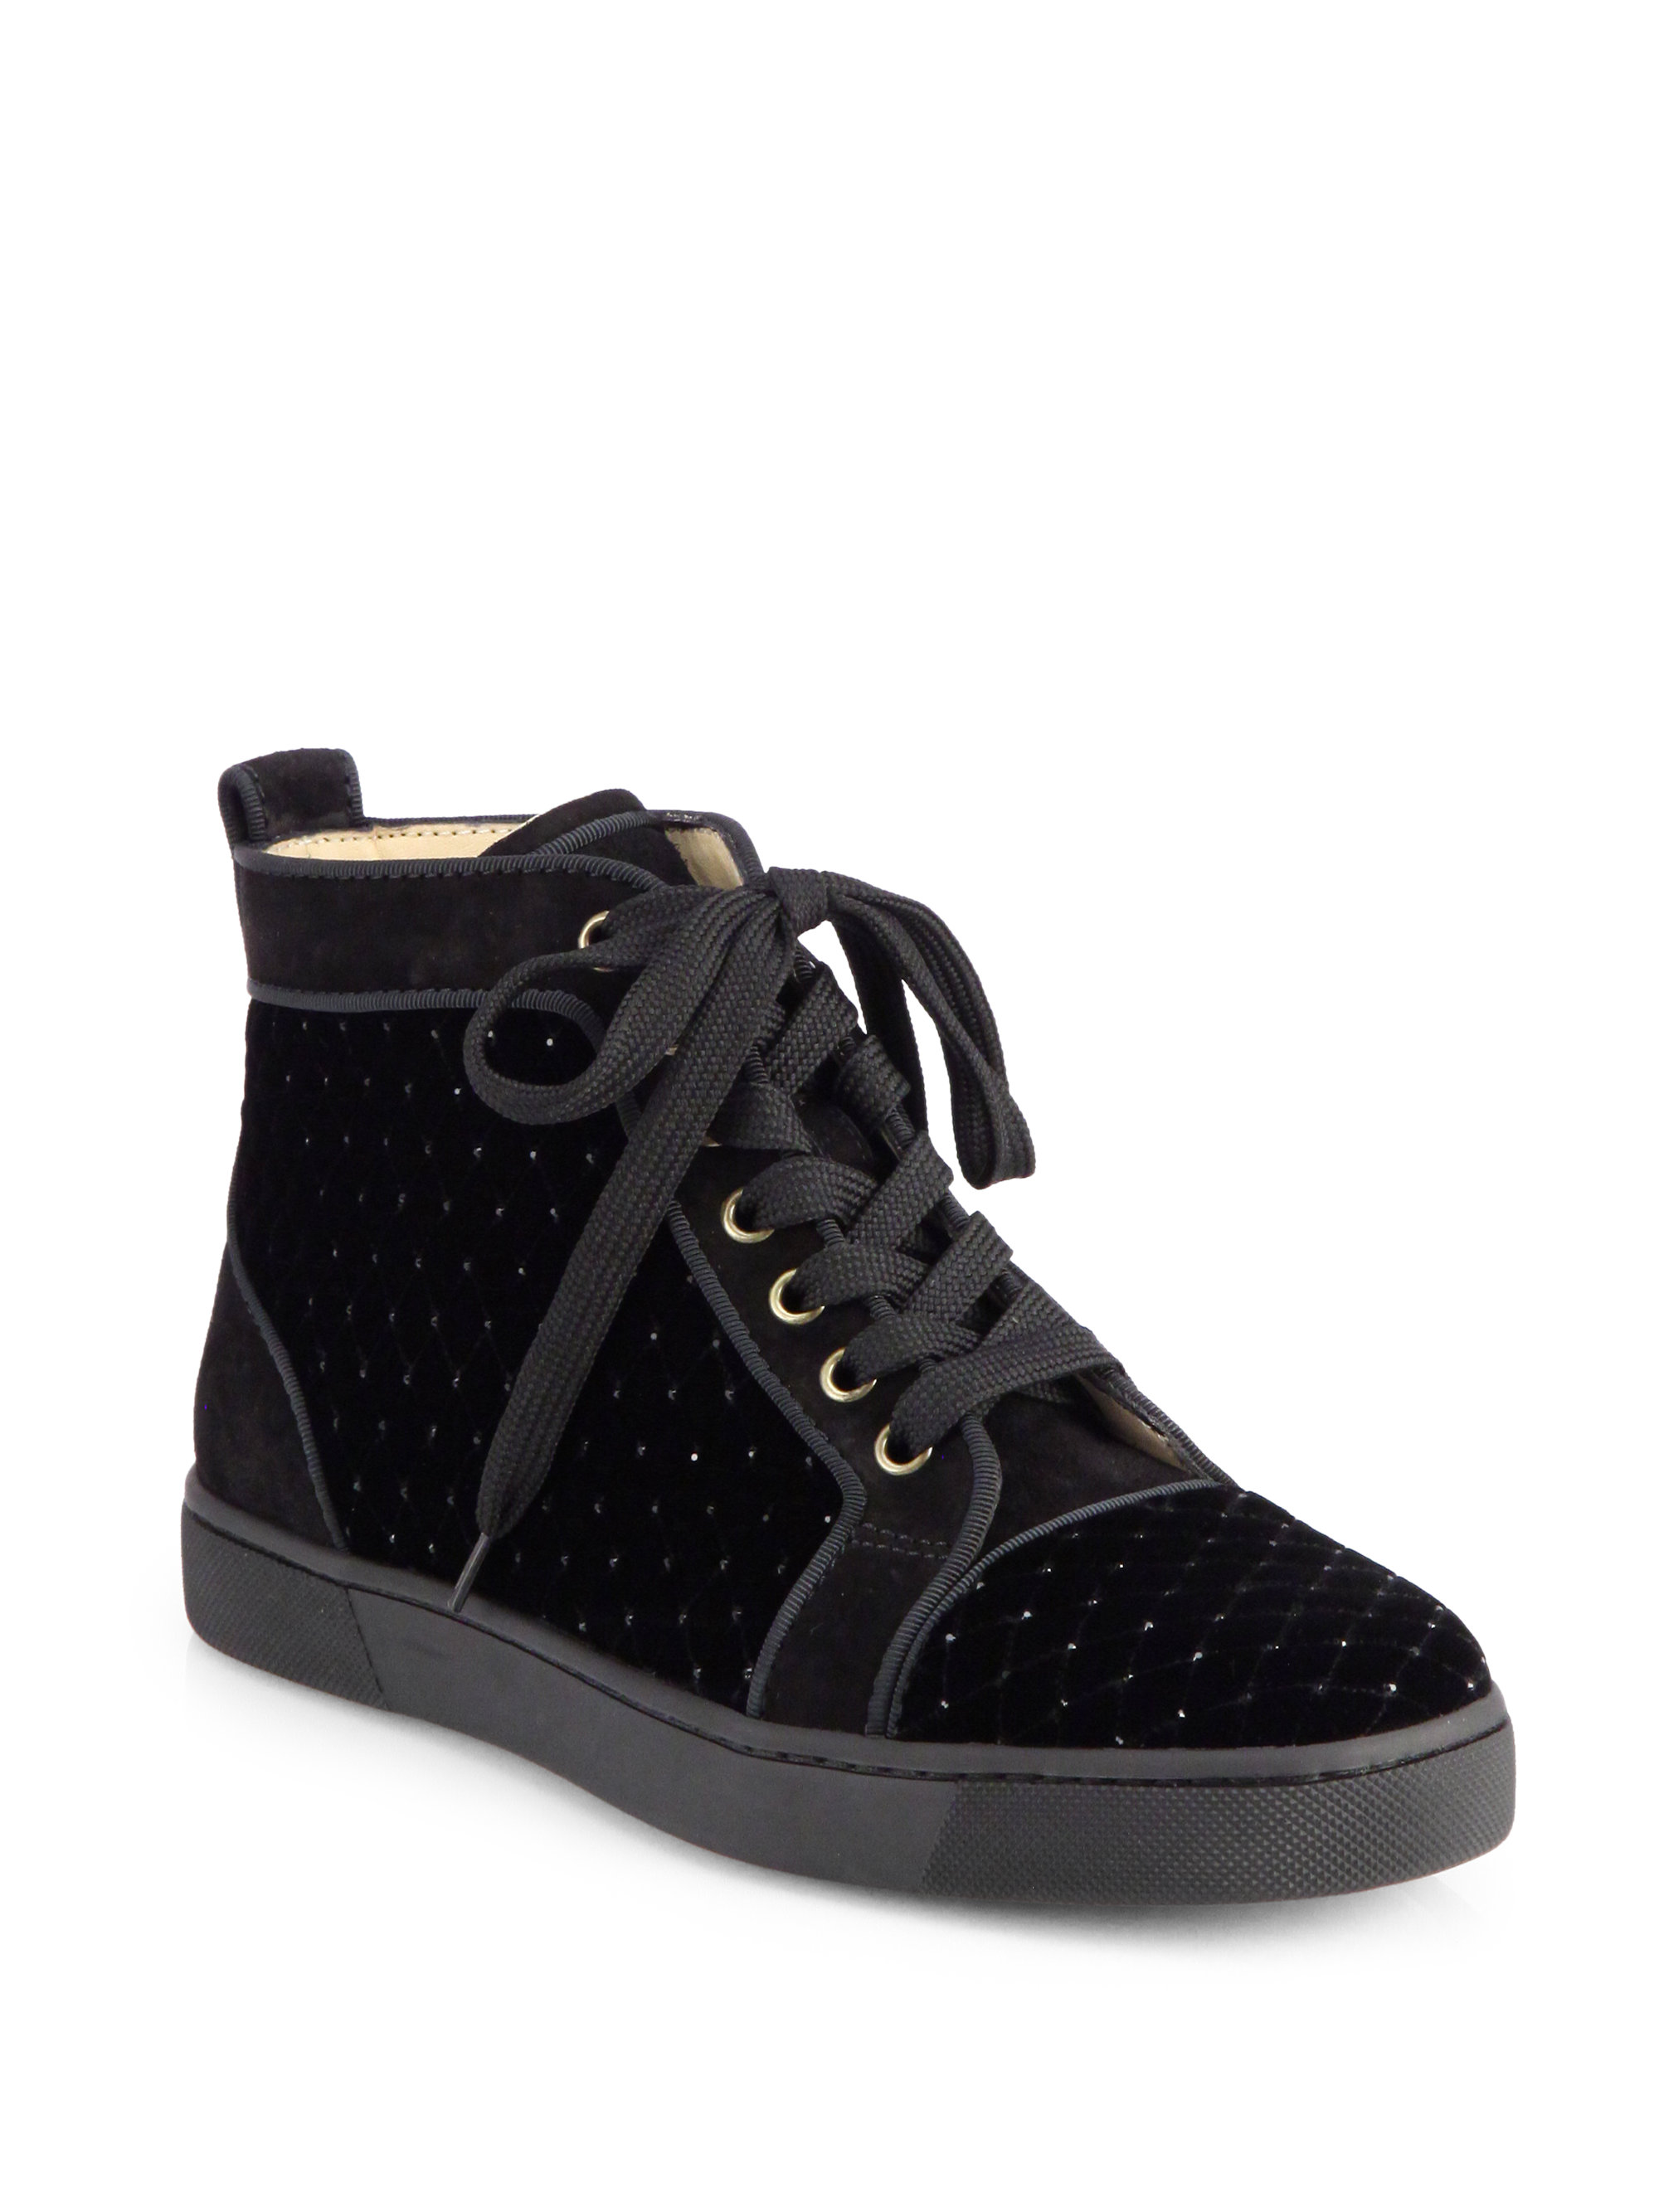 cf7b43af791c ... sweden lyst christian louboutin jeweled velvet suede laceup sneakers in  black 1e14a a8674